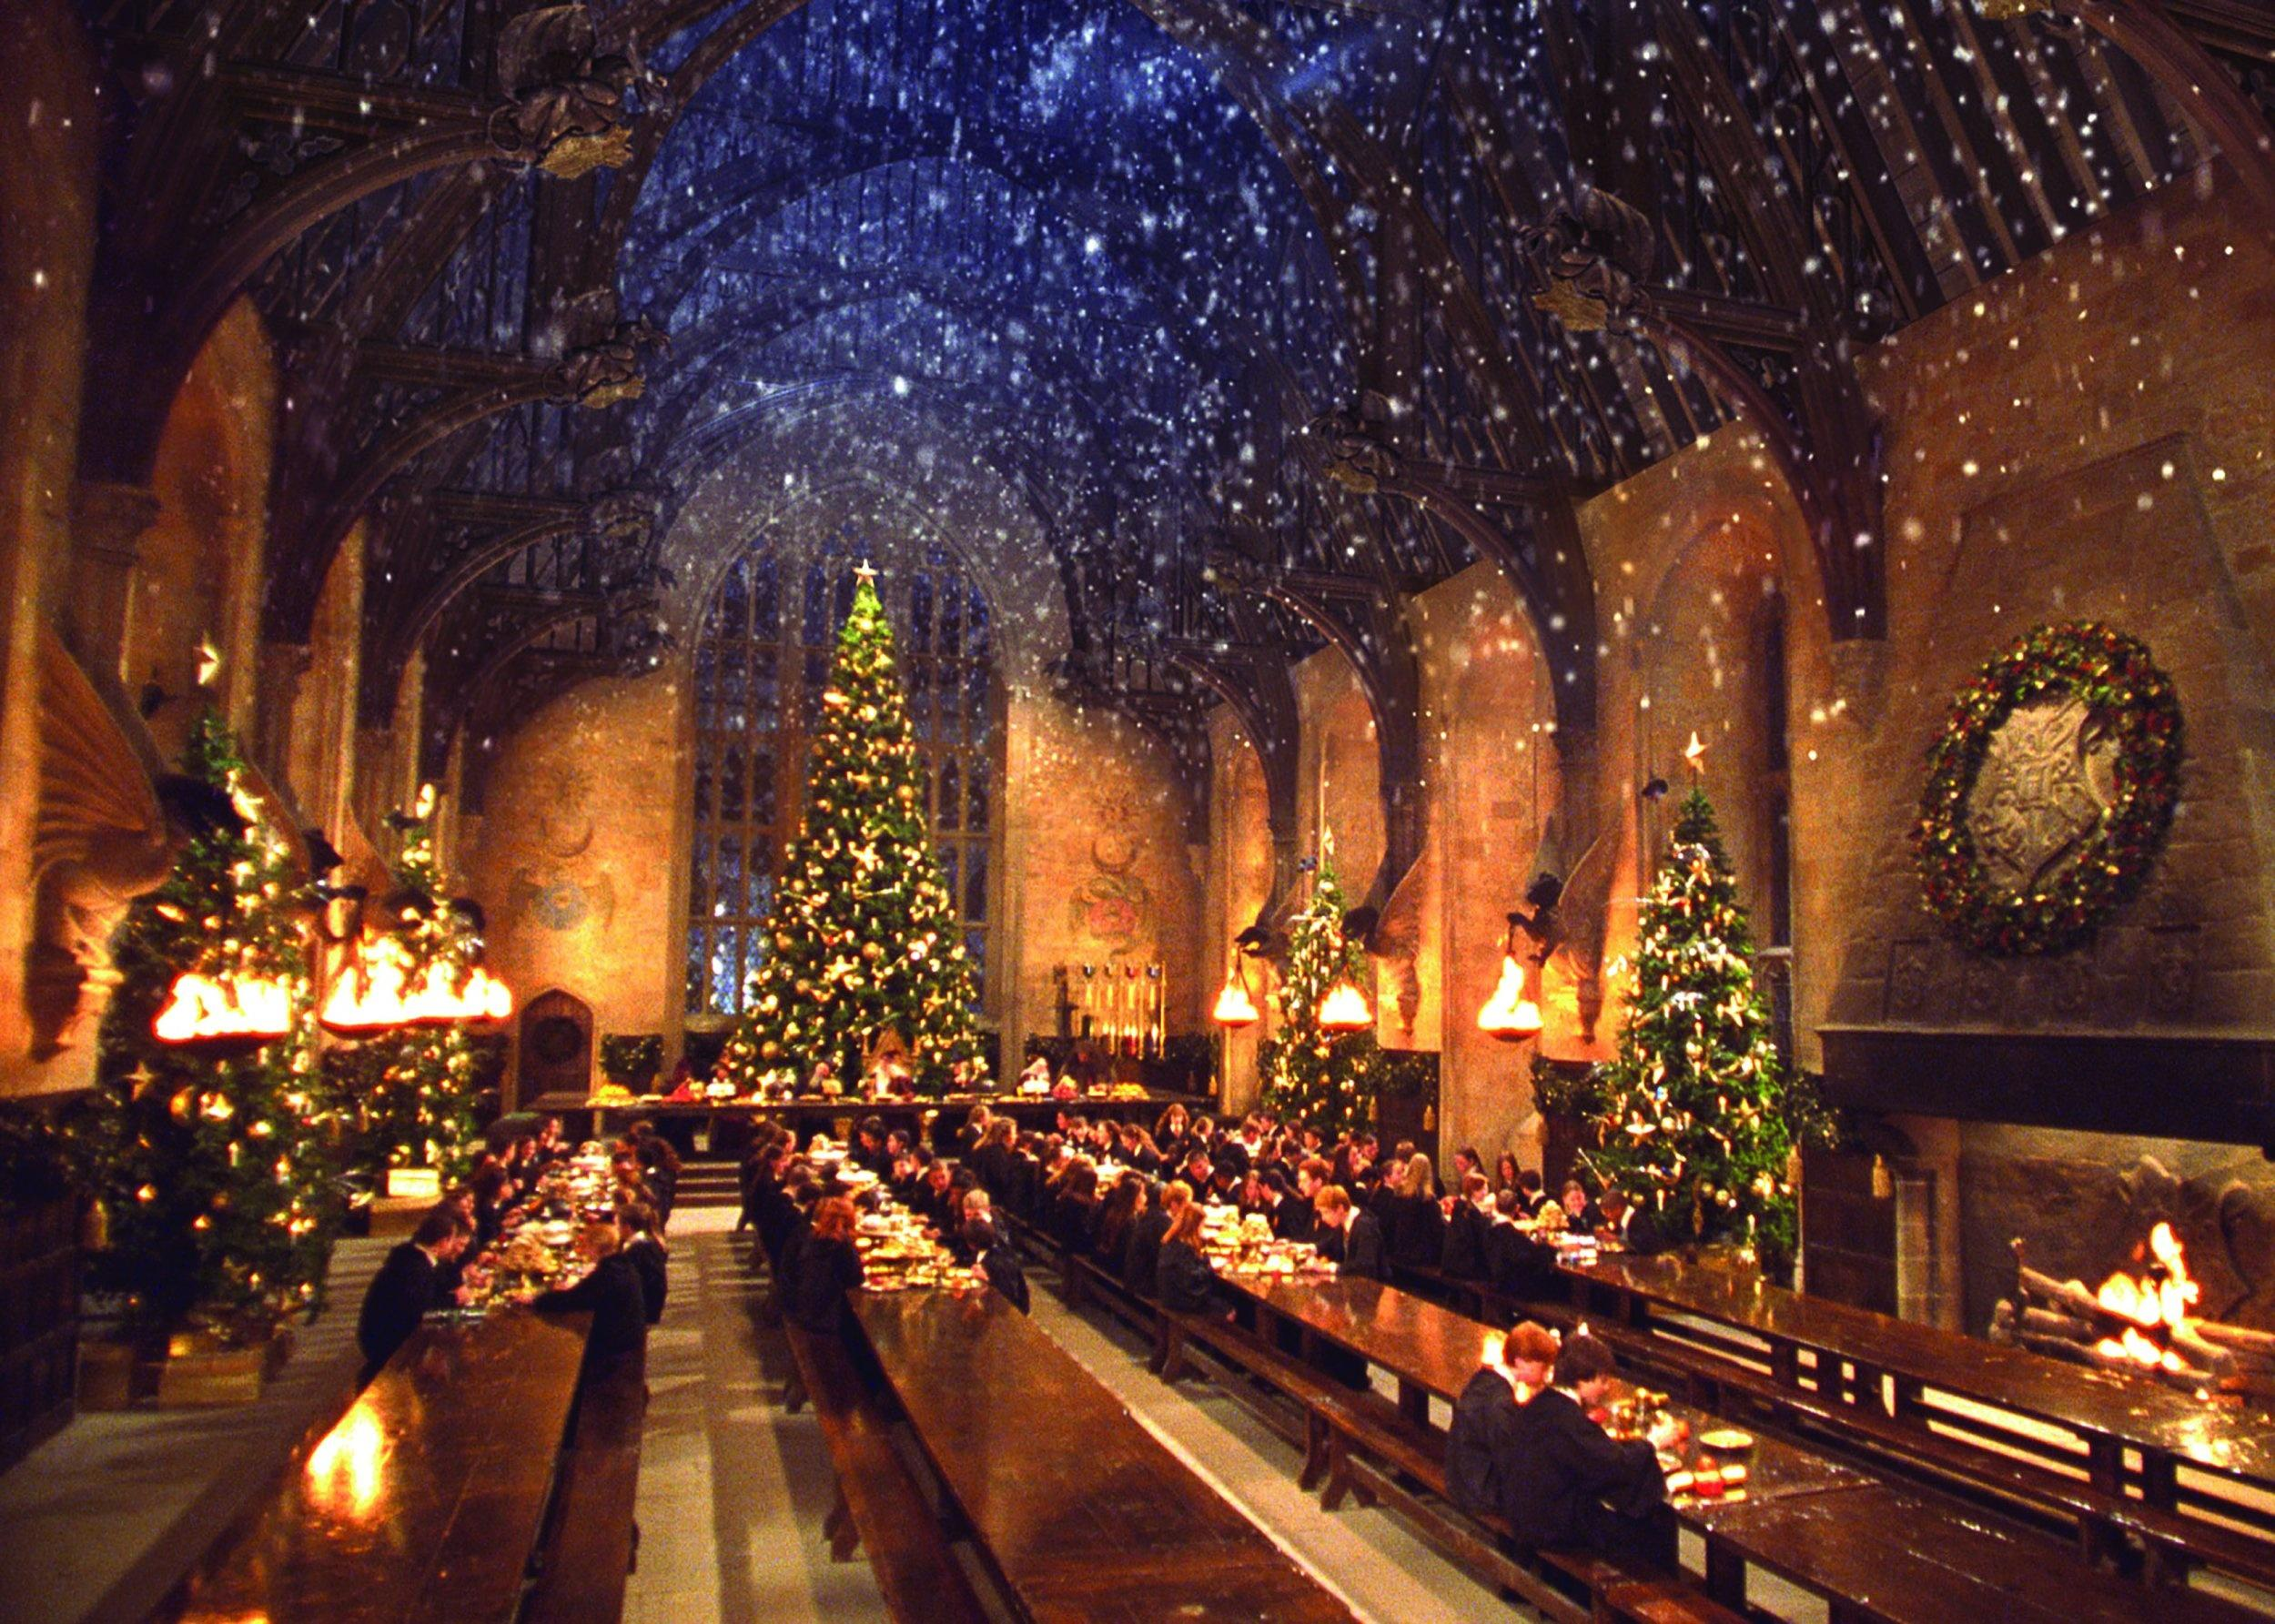 Harry Potter: The Great Hall of the Christ Church College